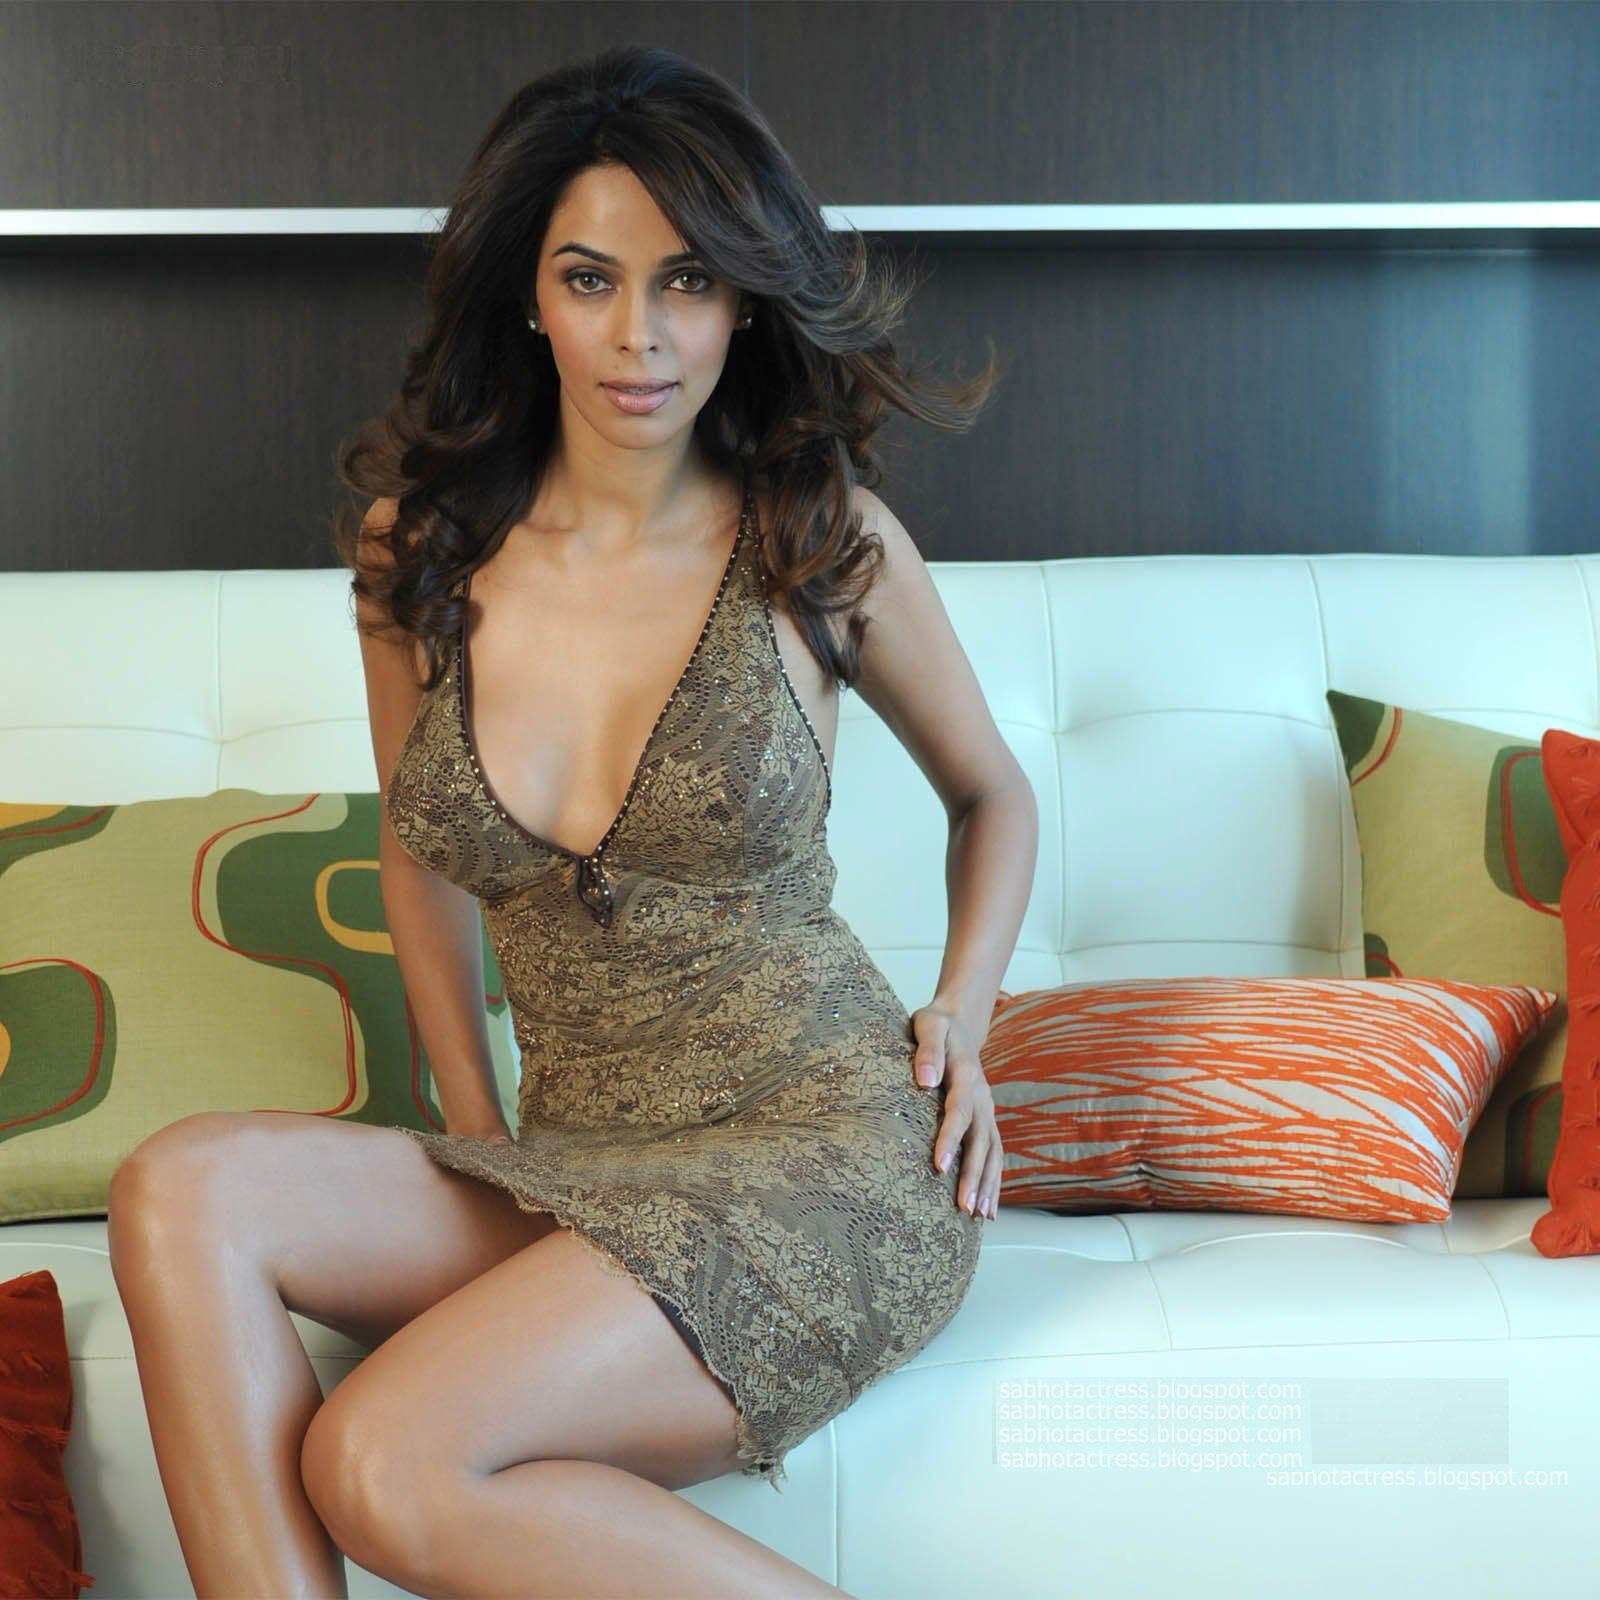 Mallika+Sherawat+Hot+and+Sexy+Thigh+Show+and+Cleavage+Show.jpg